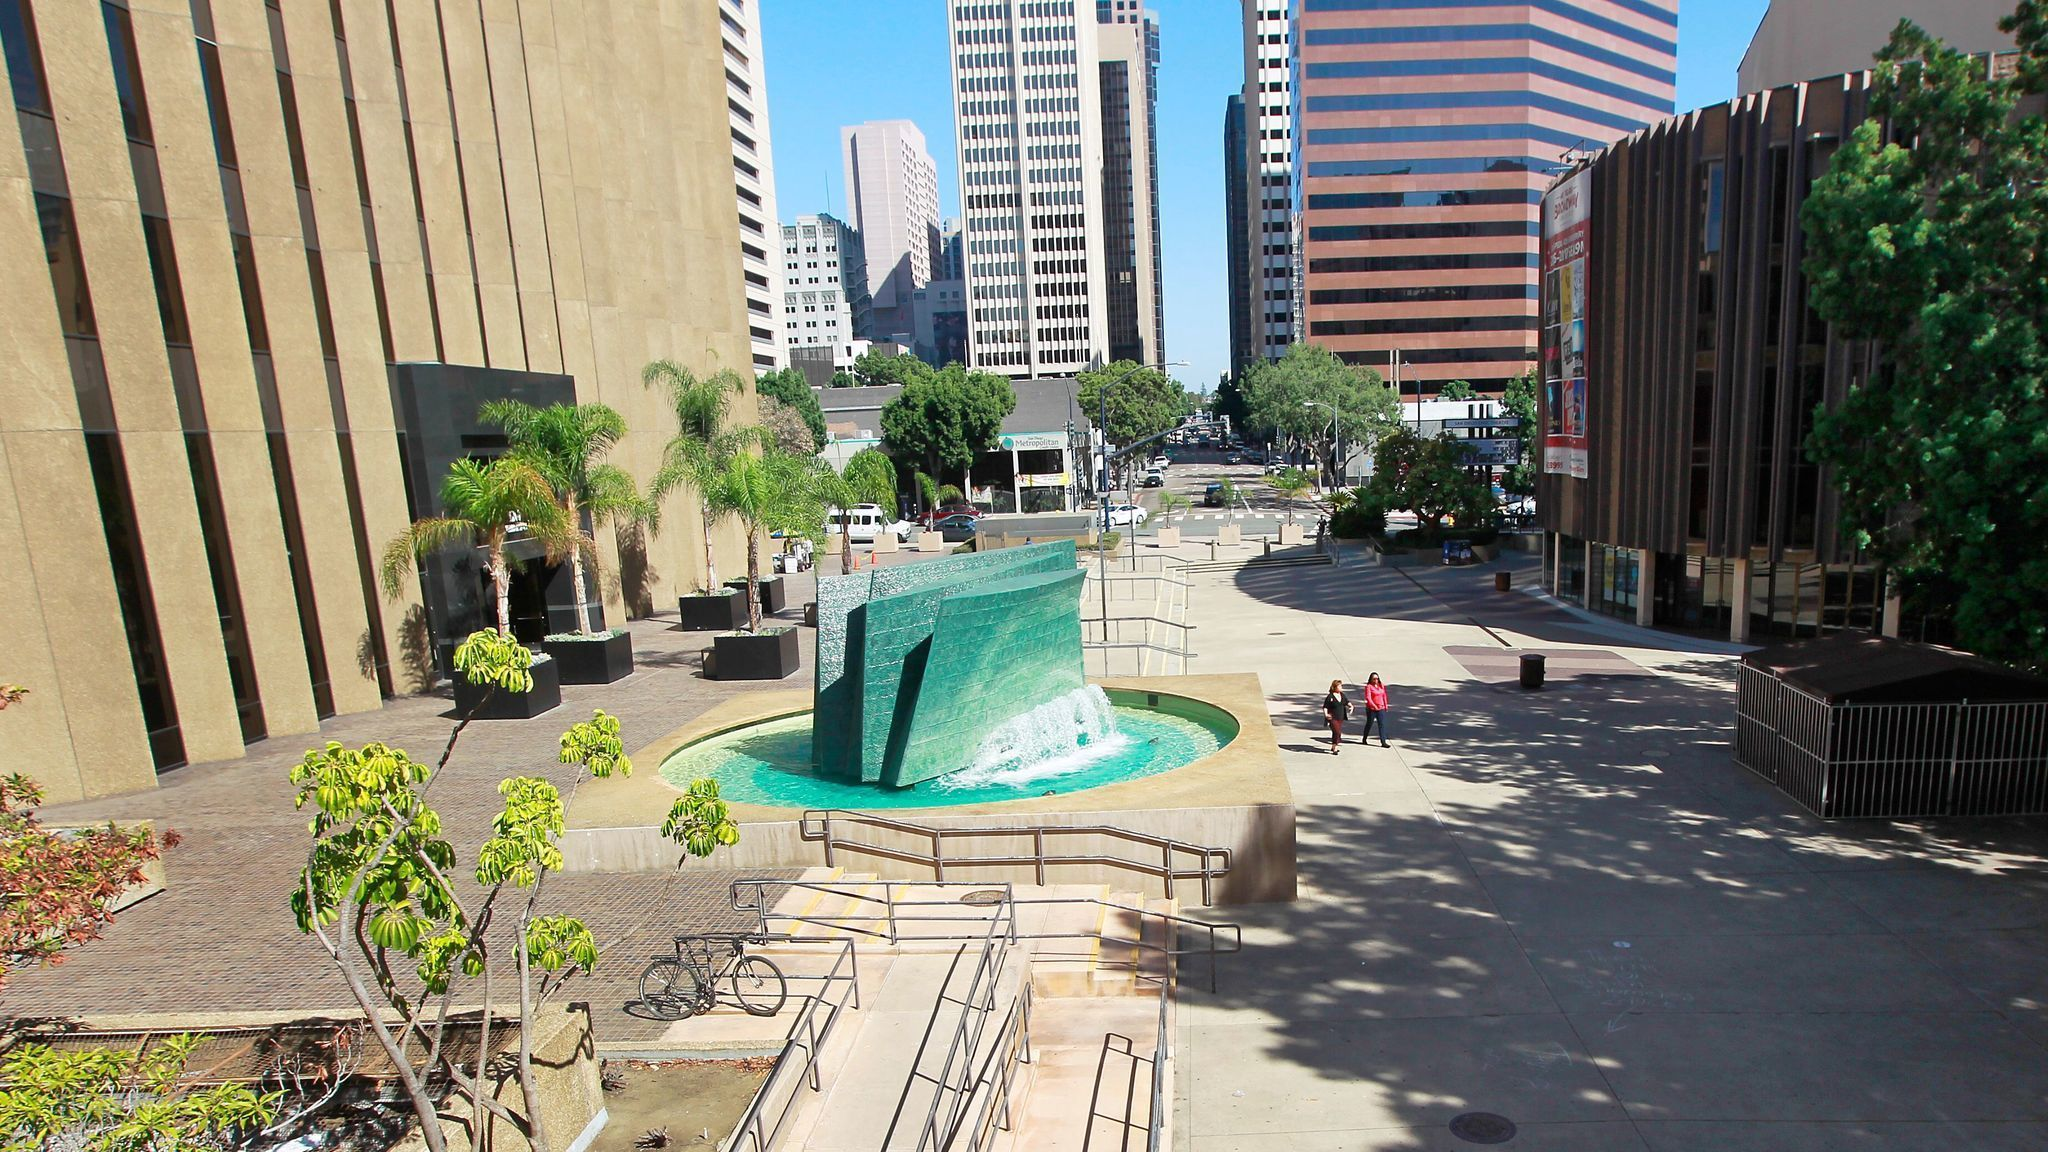 City Of San Diego Unclaimed Property